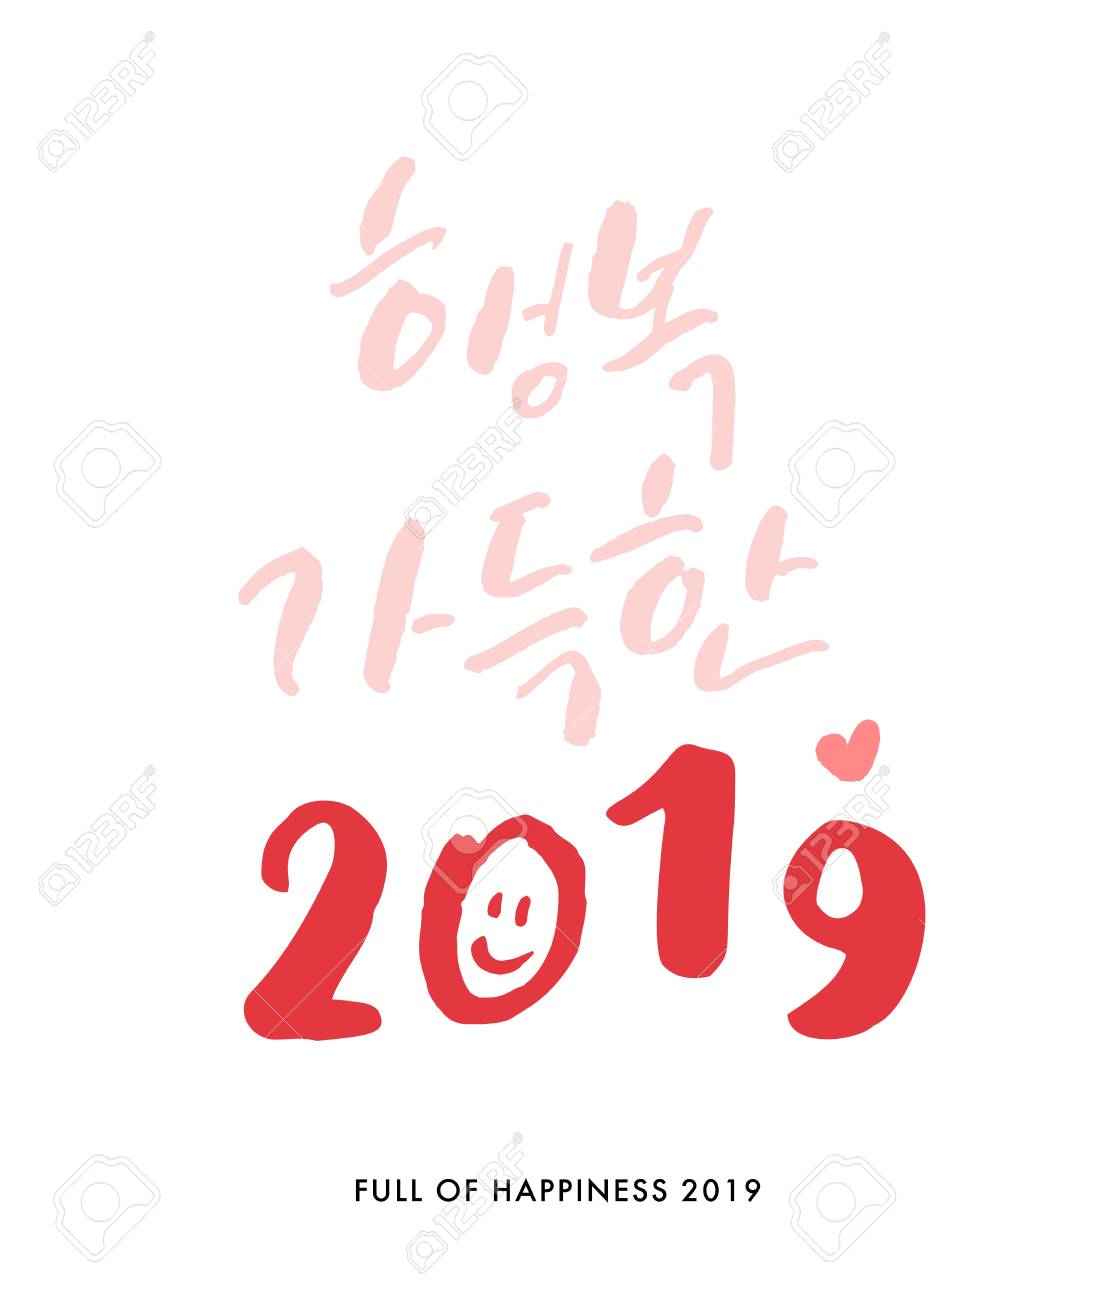 A Year Of Happiness 2019 golden pig's year, full of happiness 2019, vector hand lettered..